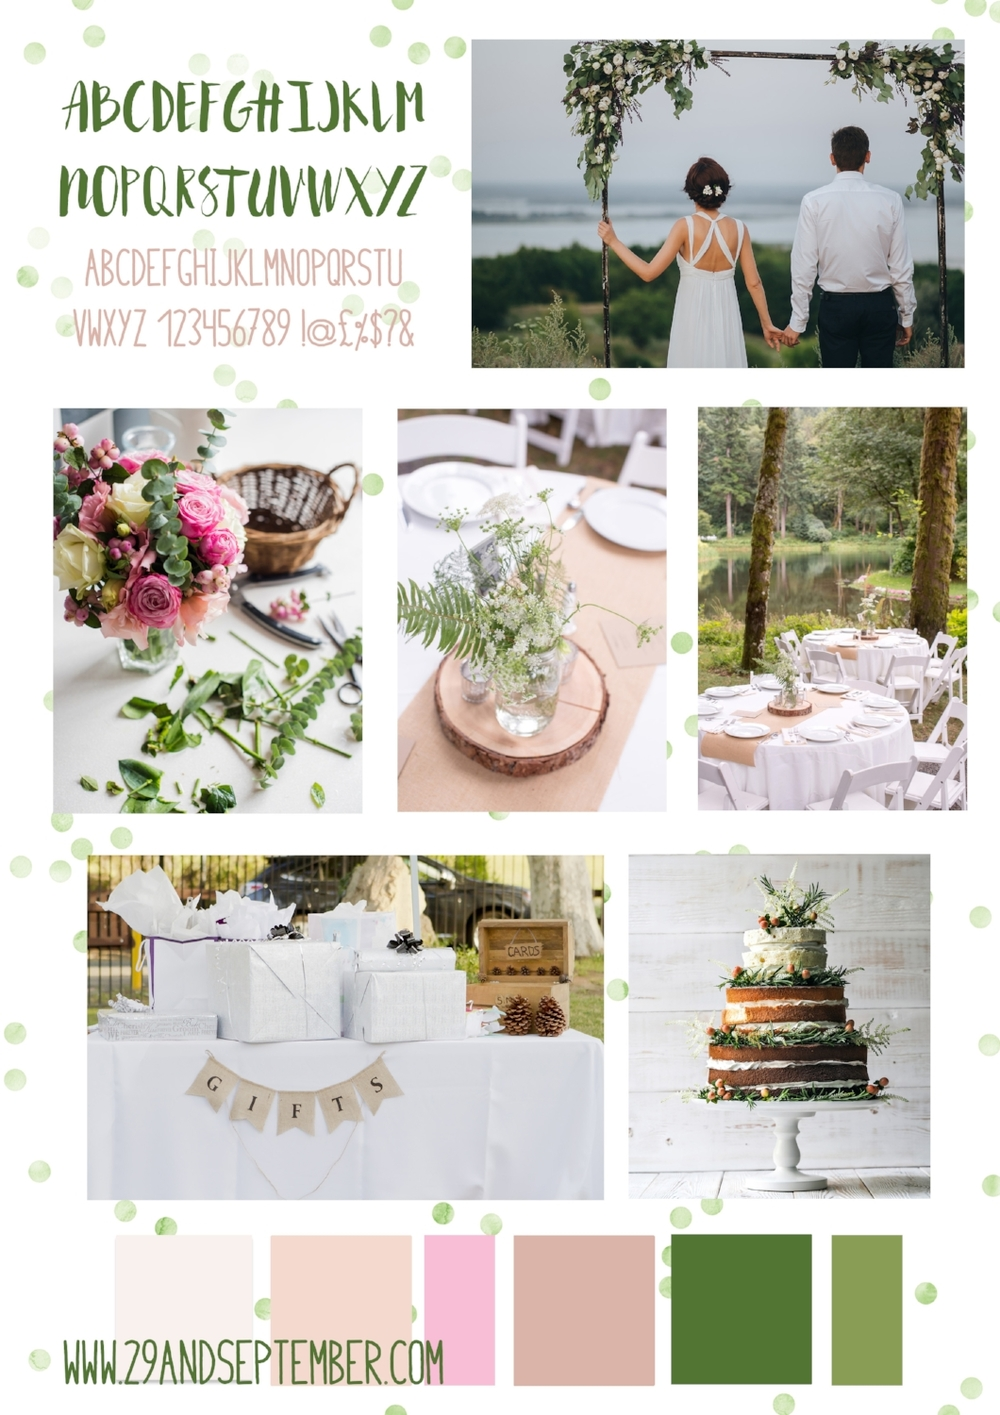 Wedding & event planning & styling